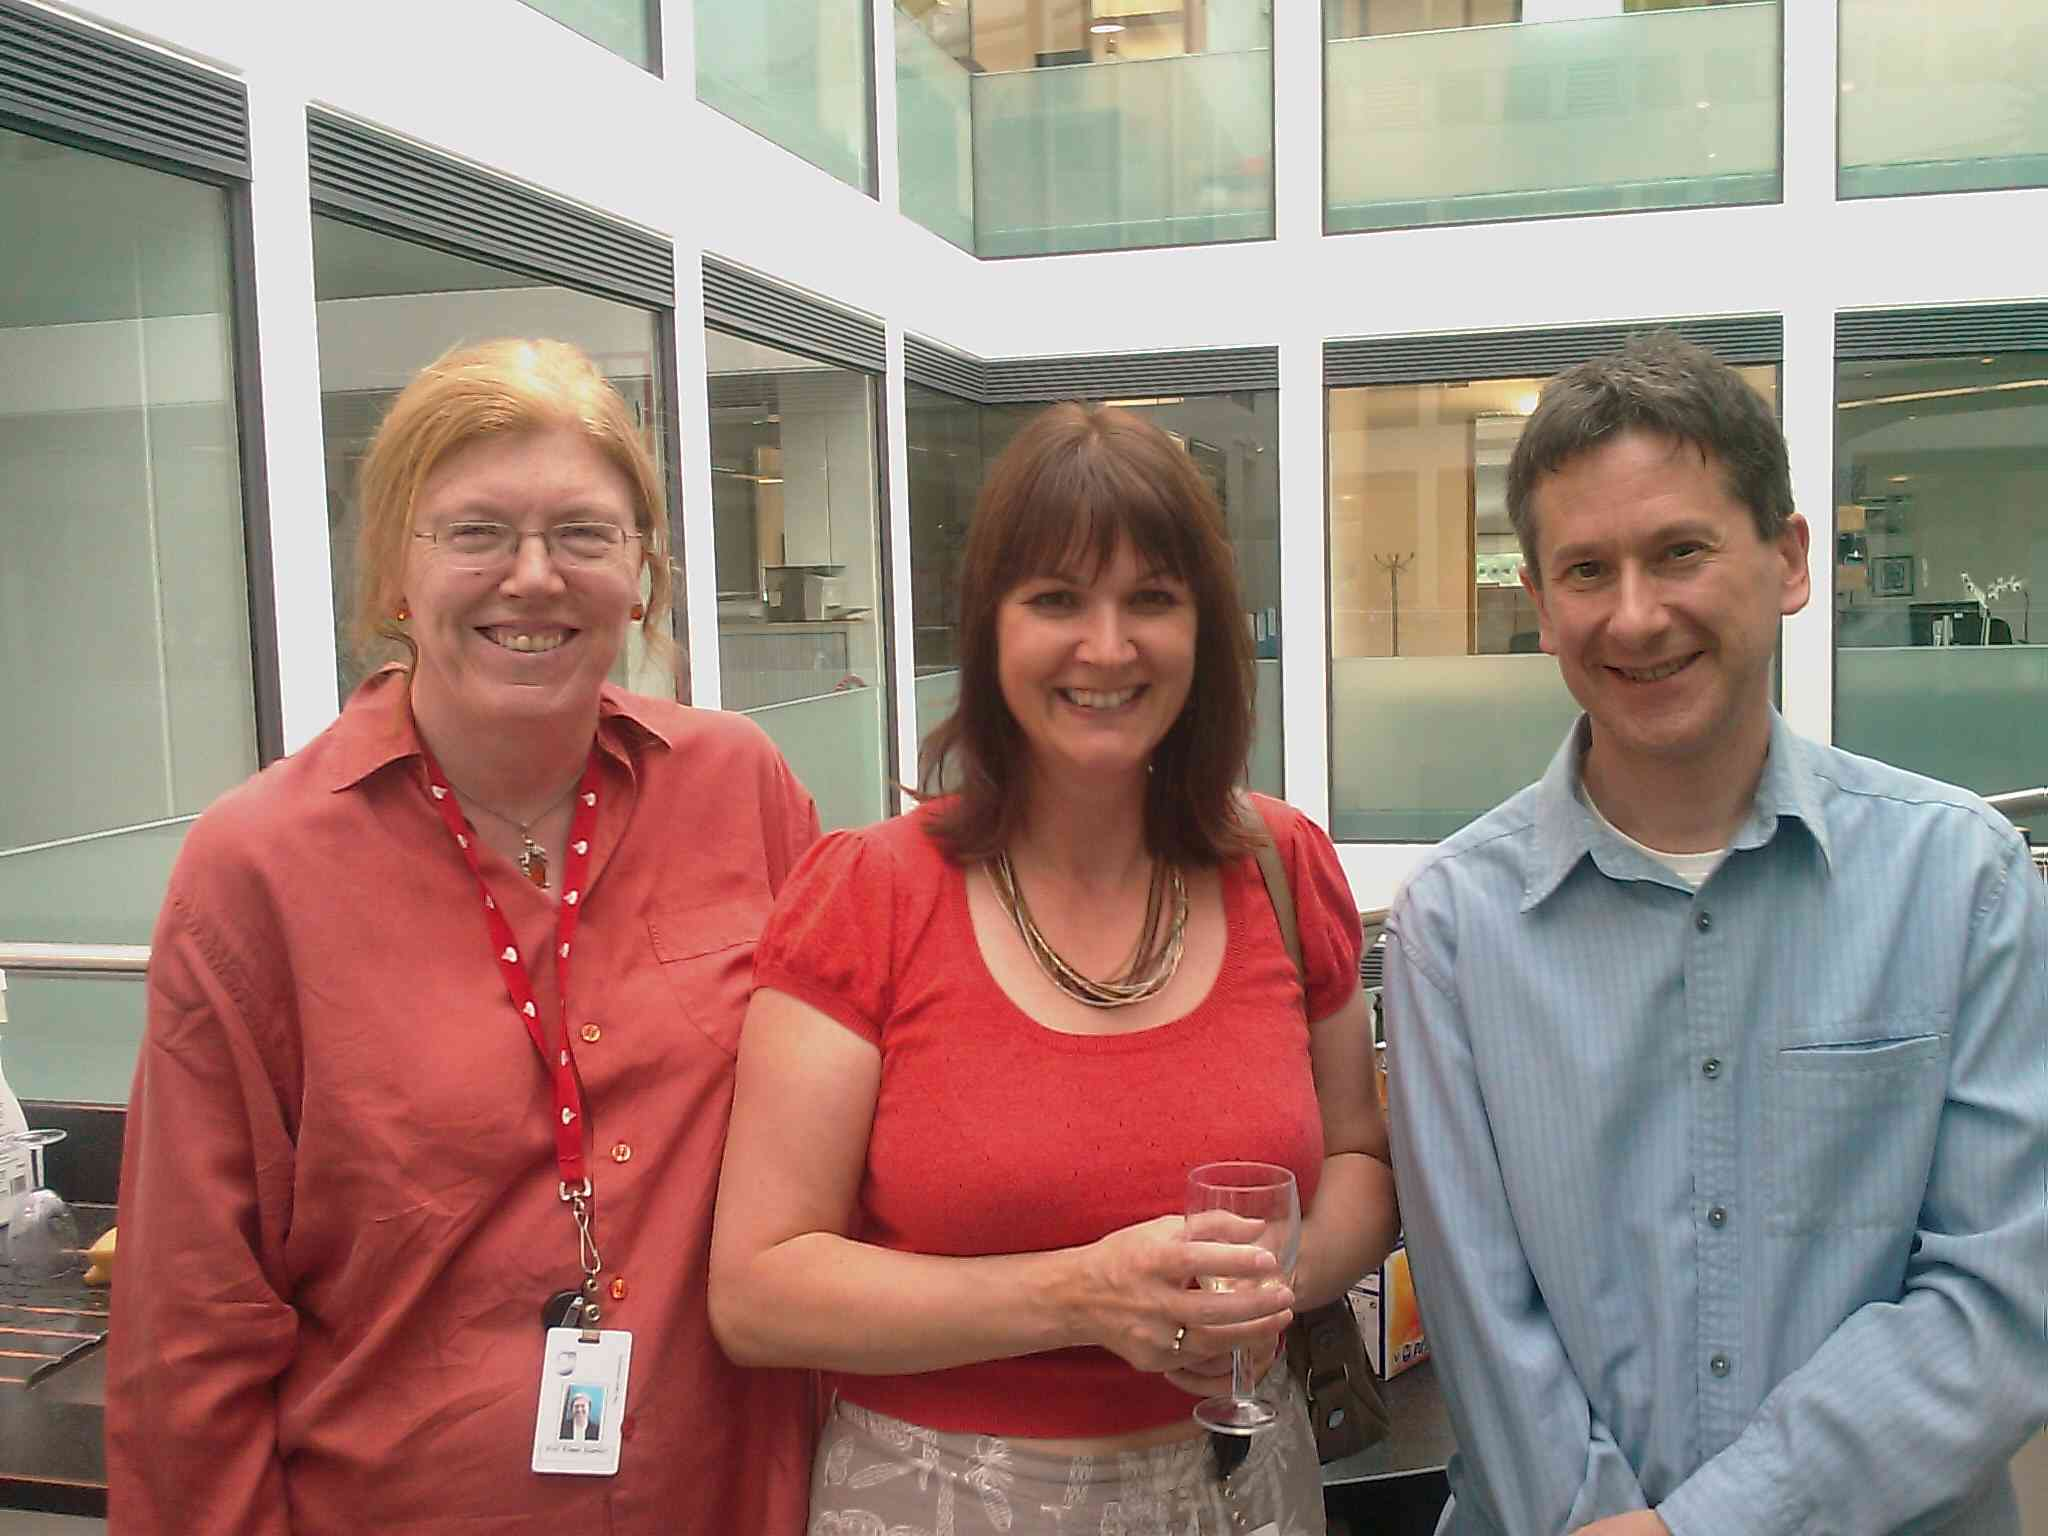 Eileen, Gill and Patrick celebrating the successful viva